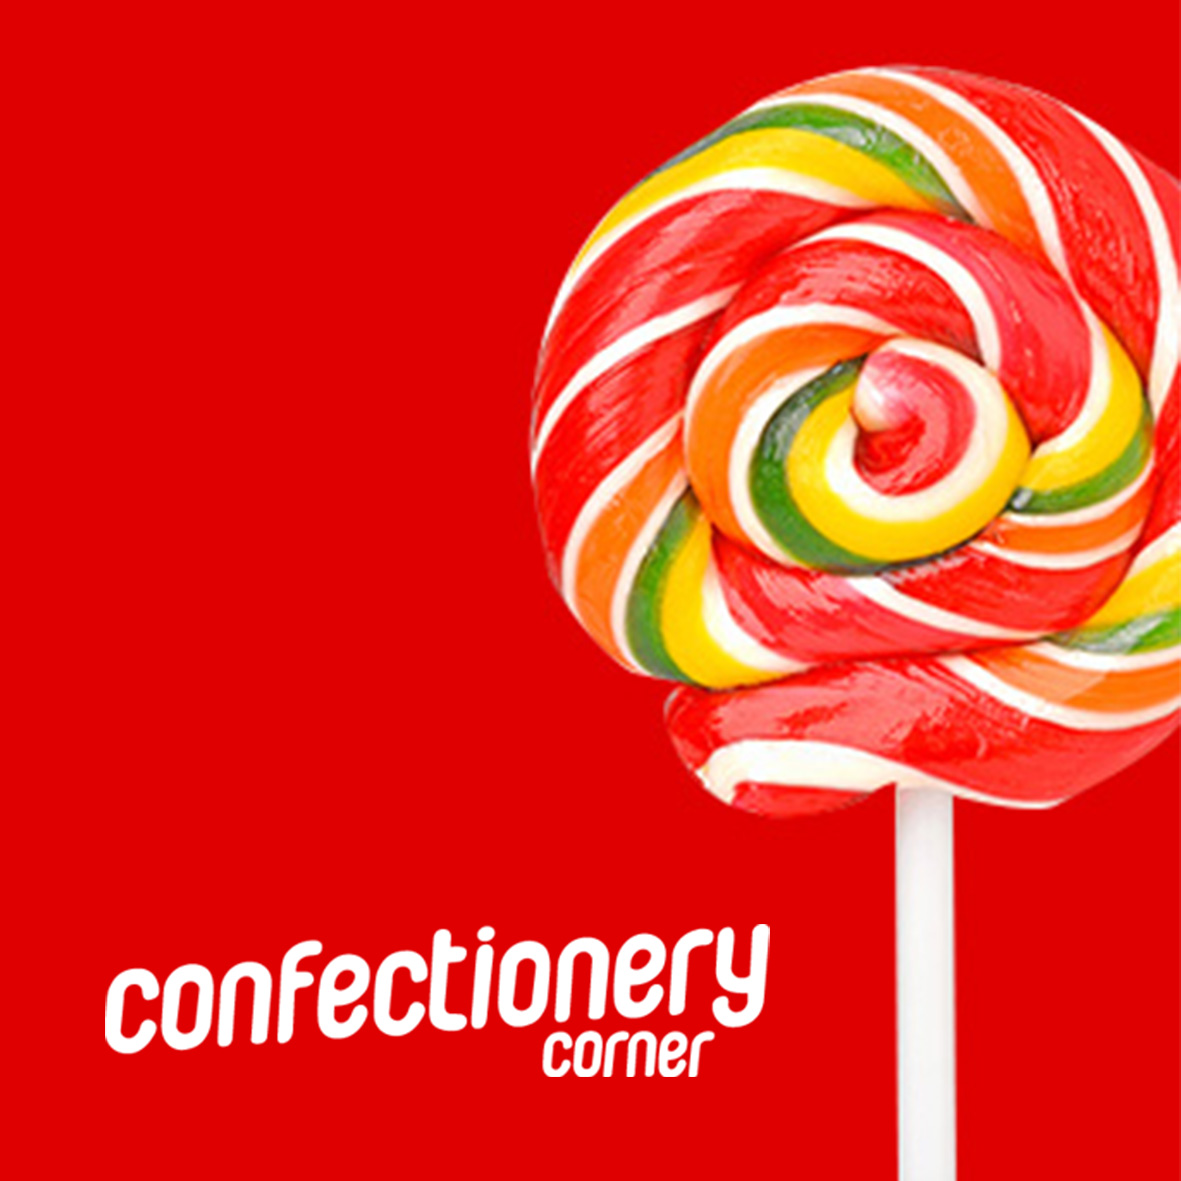 confectionary.jpg